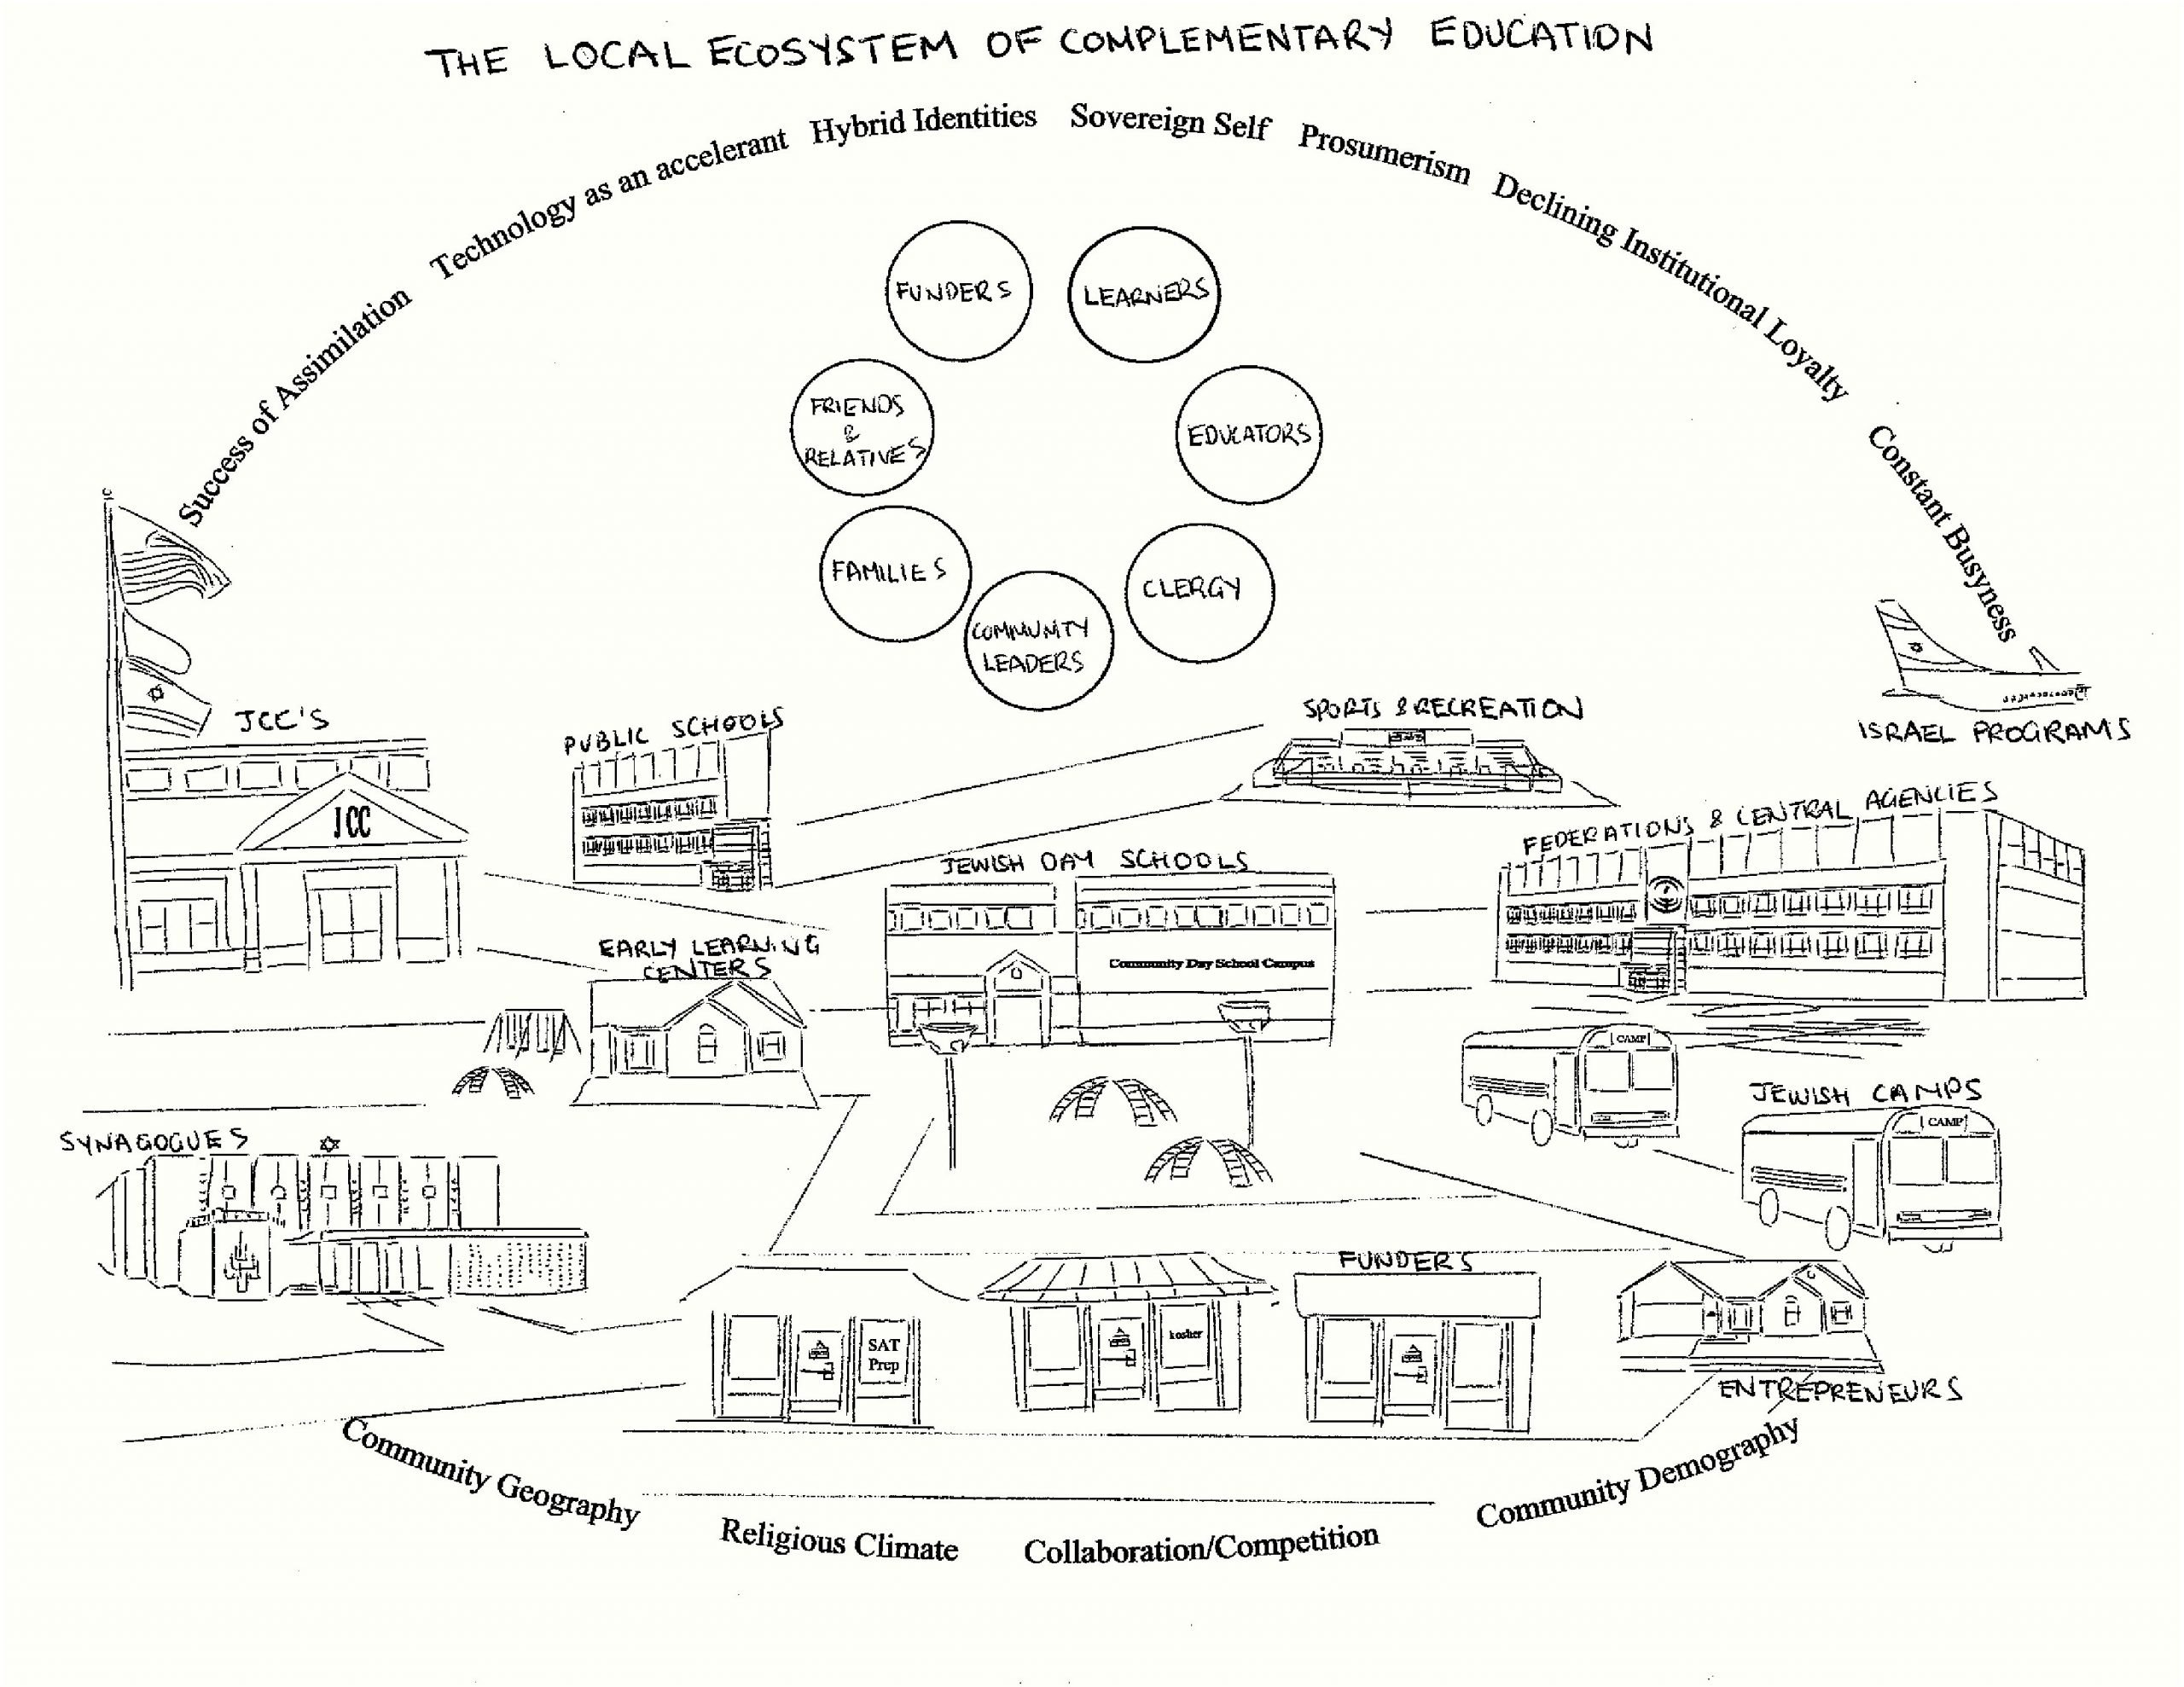 The Local Ecosystem of Complementary Education